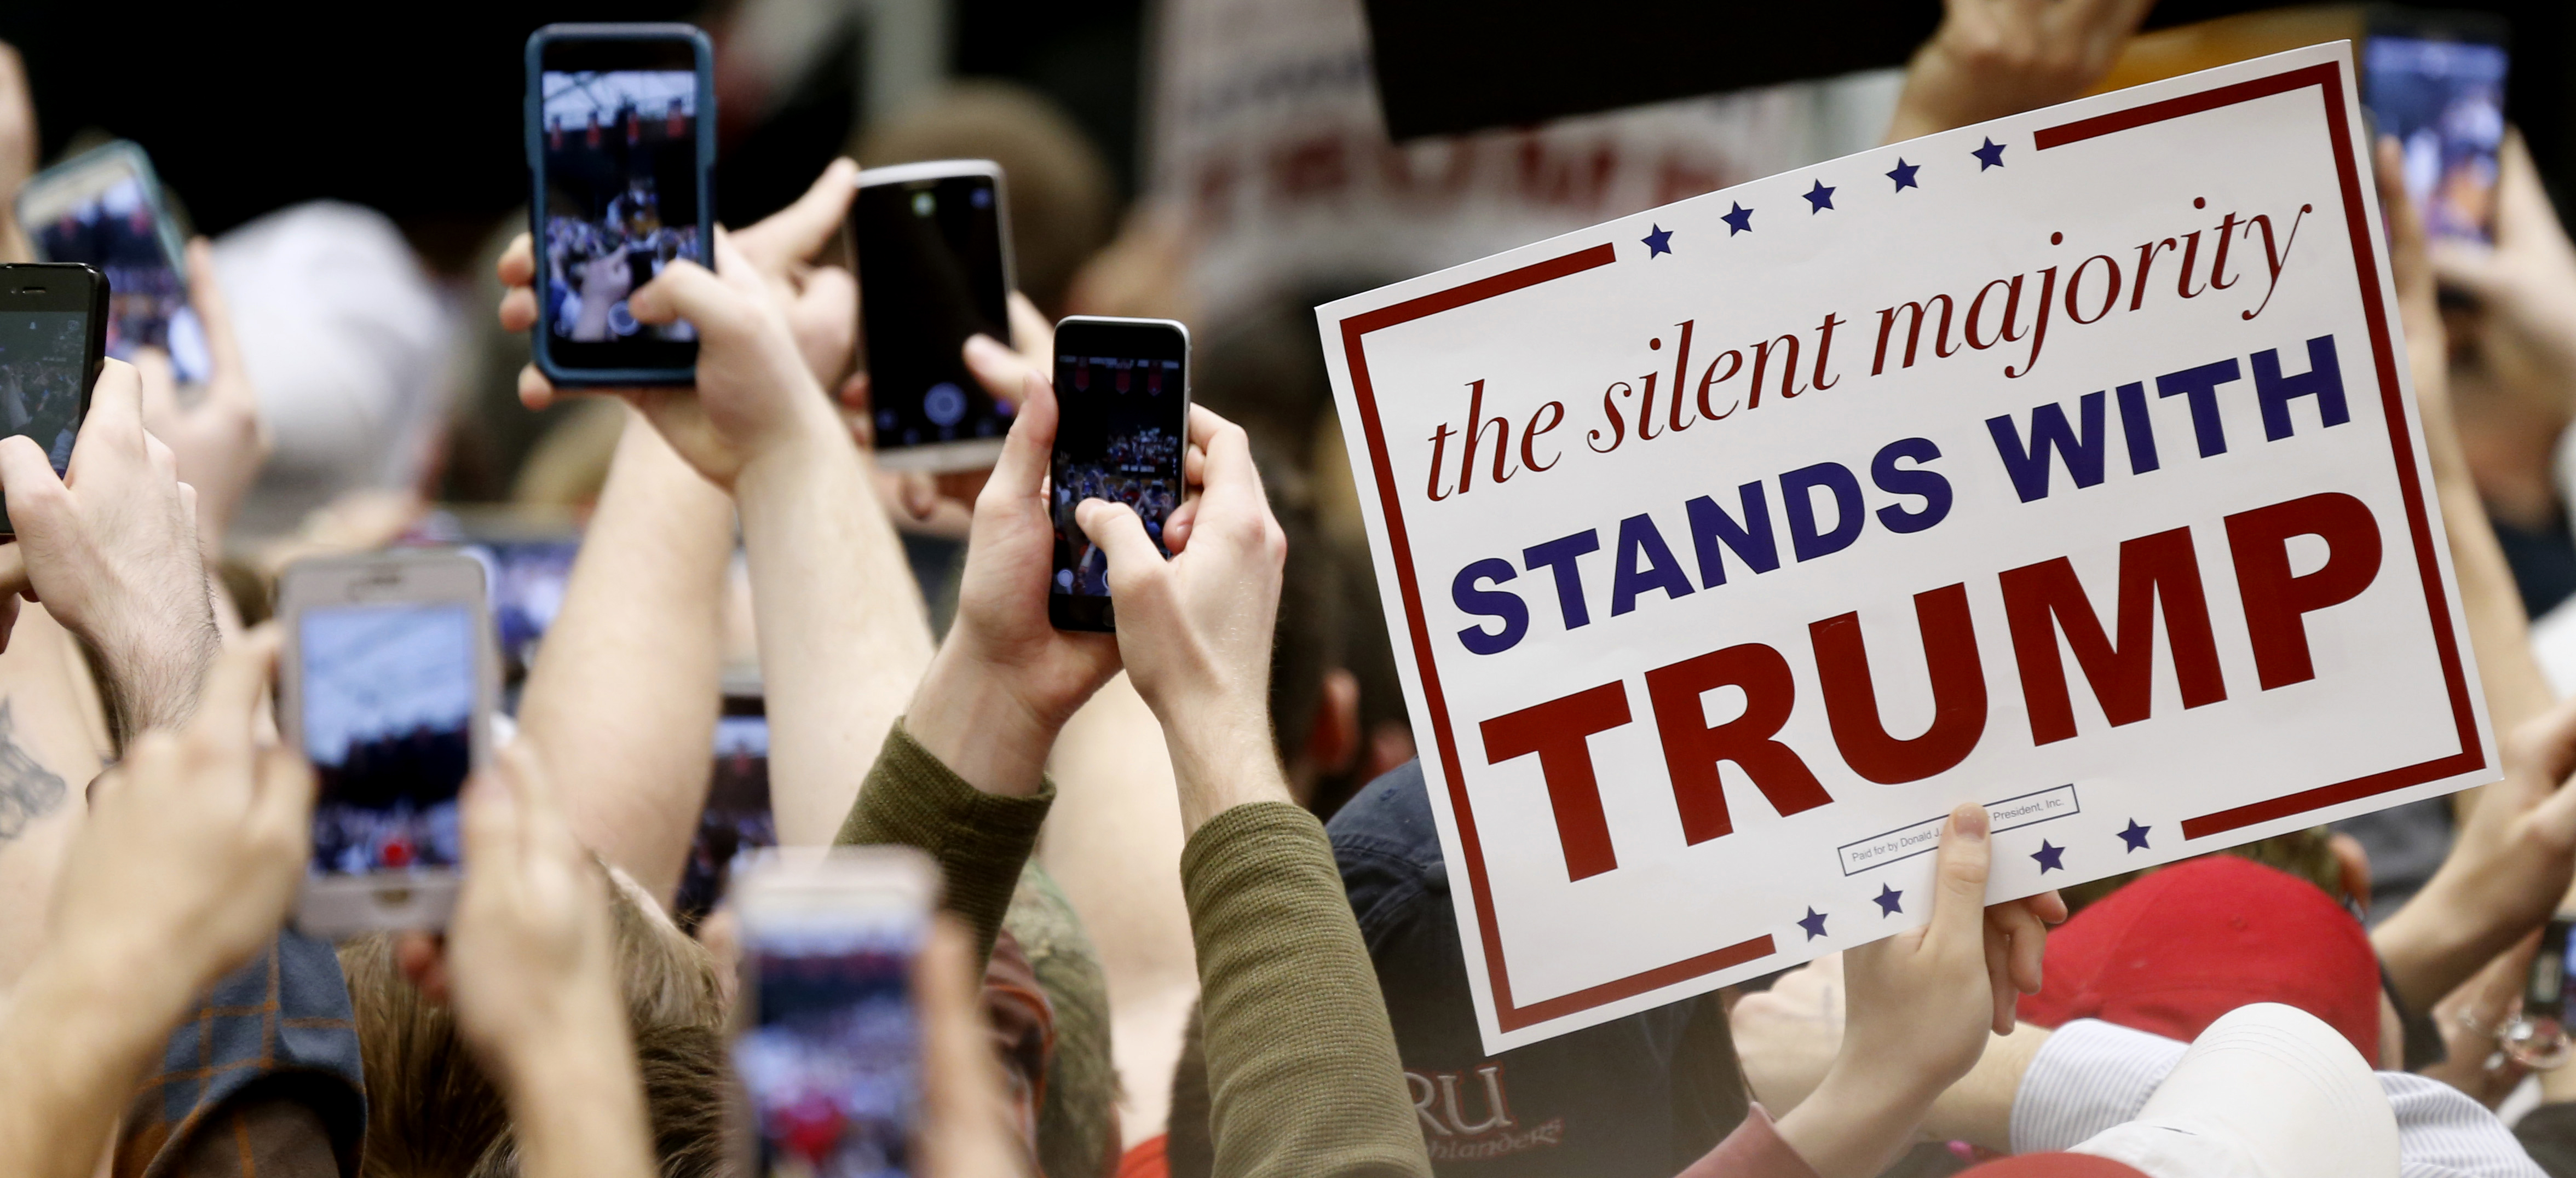 Supporters of Republican presidential candidate, Donald Trump hold up phones and signs as the arrives for a rally at Radford University in Radford, Virginia, Feb. 29, 2016.